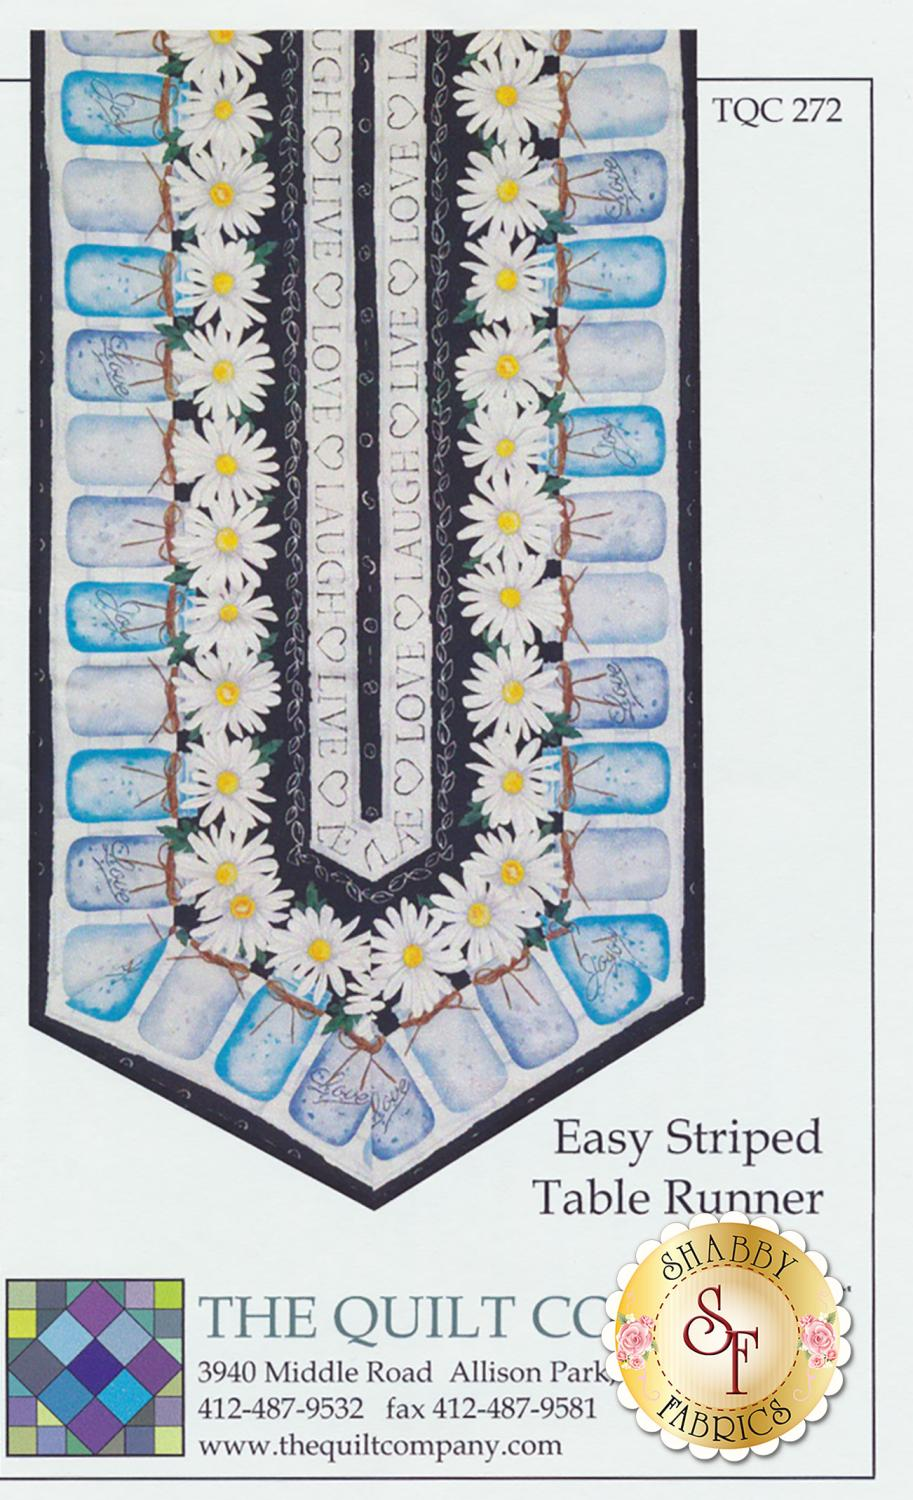 Easy Striped Table Runner pattern